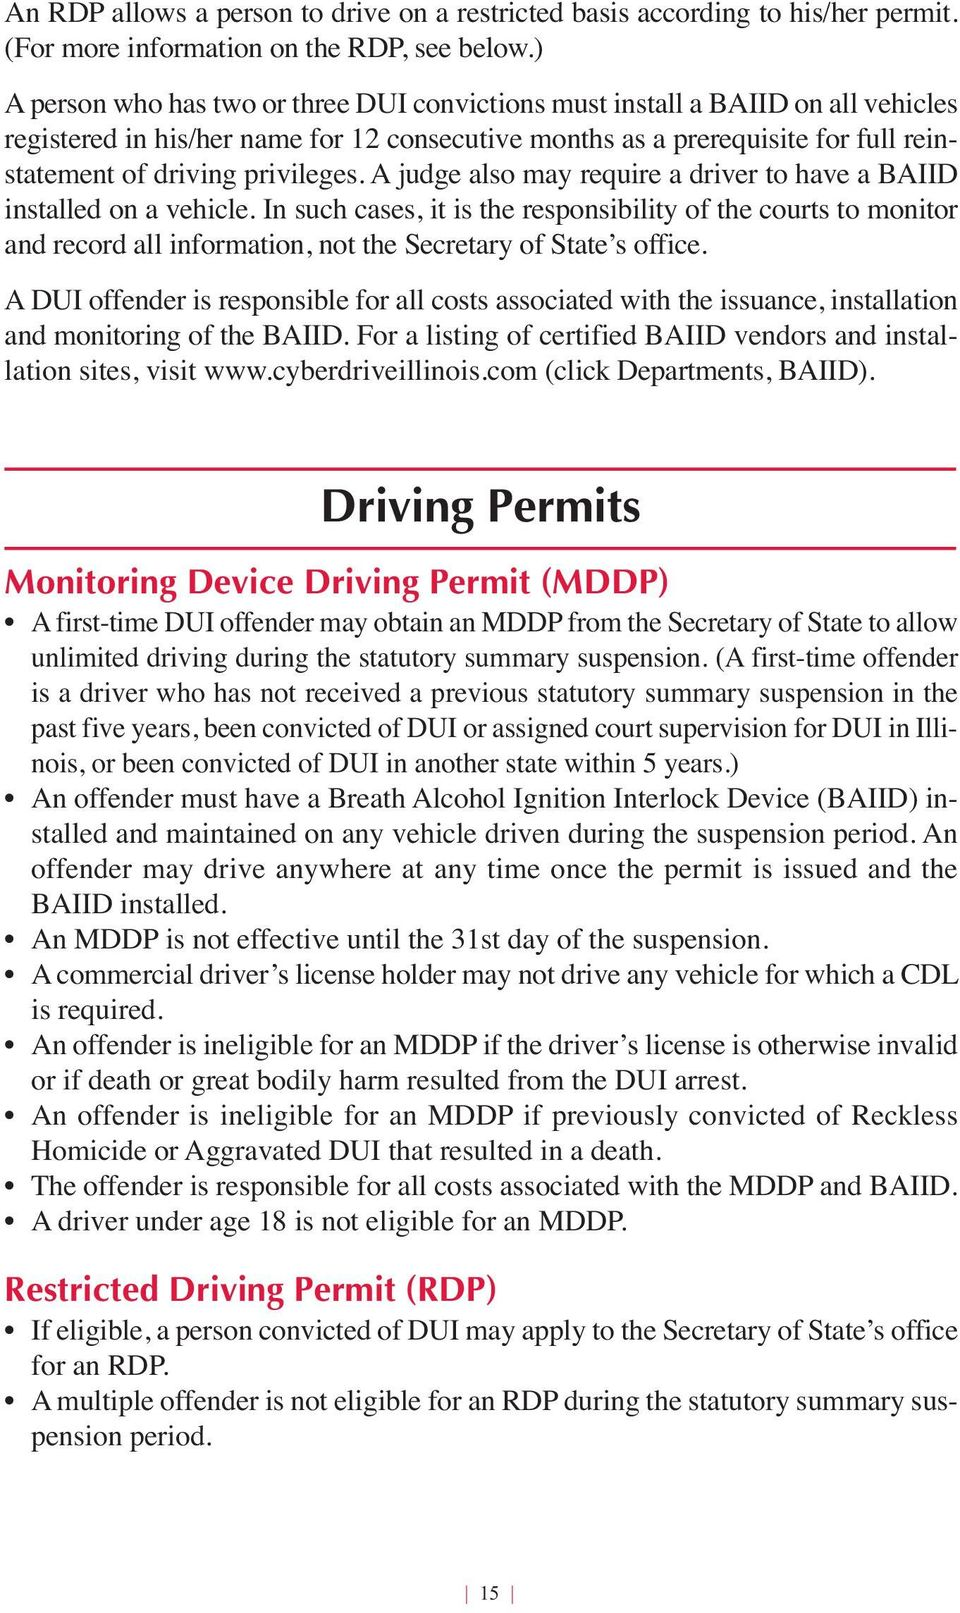 A judge also may require a driver to have a BAIID installed on a vehicle.